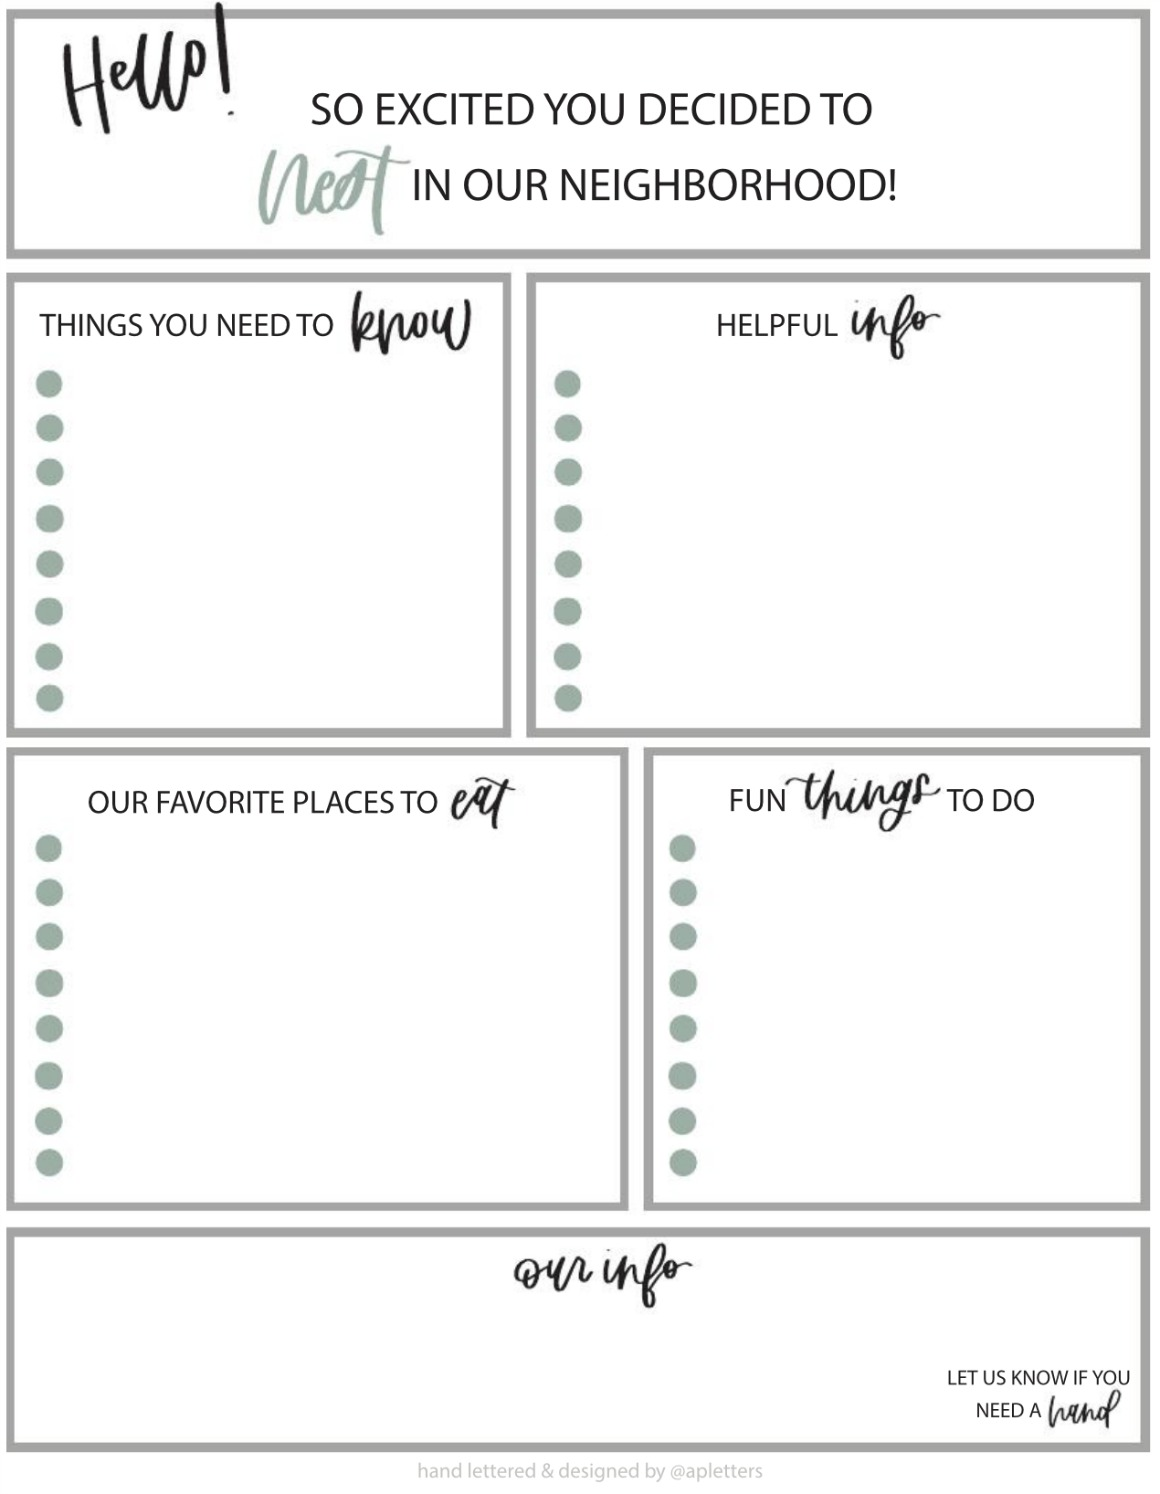 graphic regarding Welcome to the Neighborhood Printable named Gluten Totally free Artisan Bread Recipe